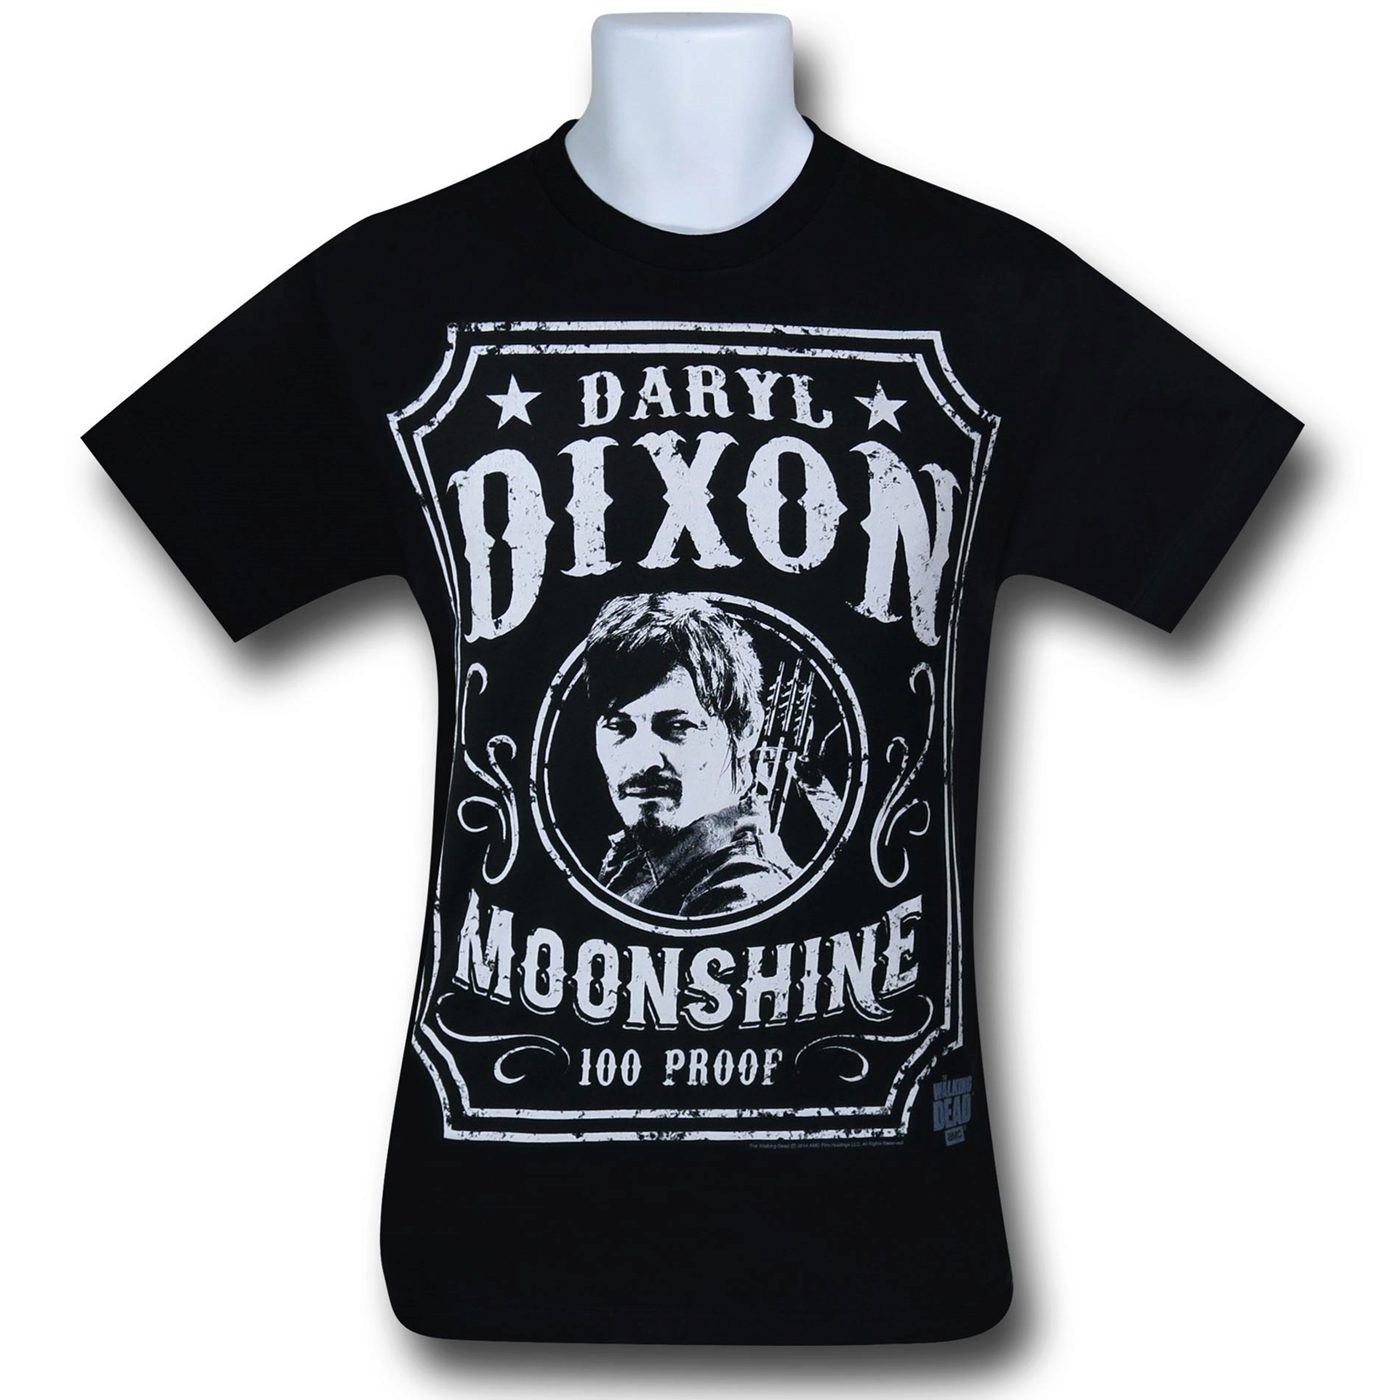 Walking Dead Dixon Moonshine T-Shirt